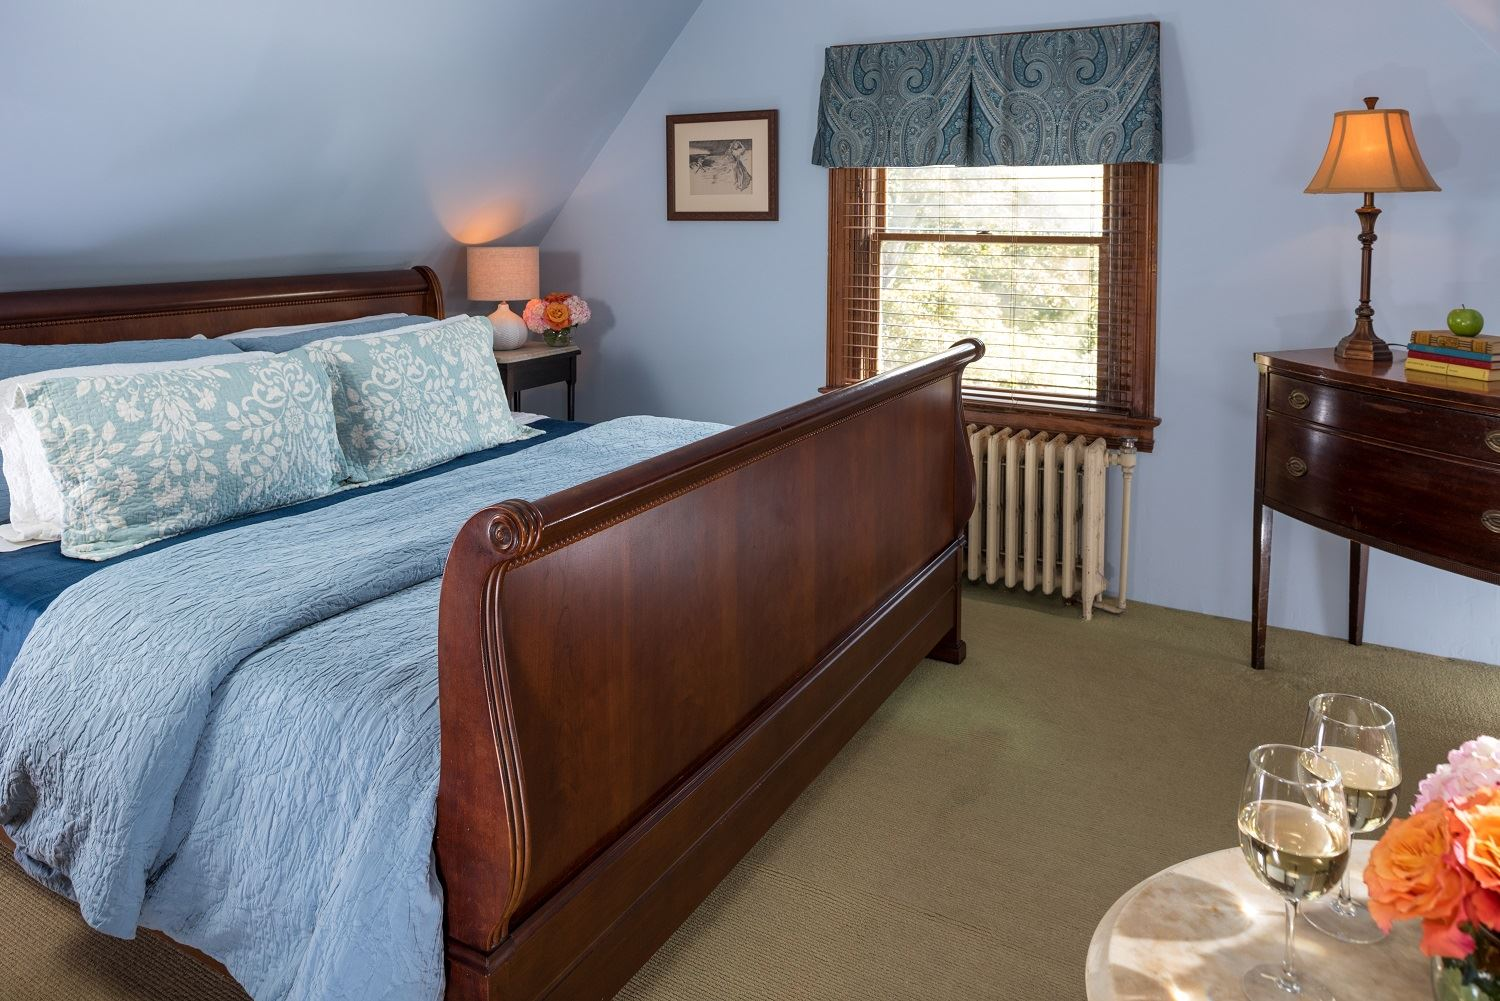 King S Victorian Inn Bed And Breakfast